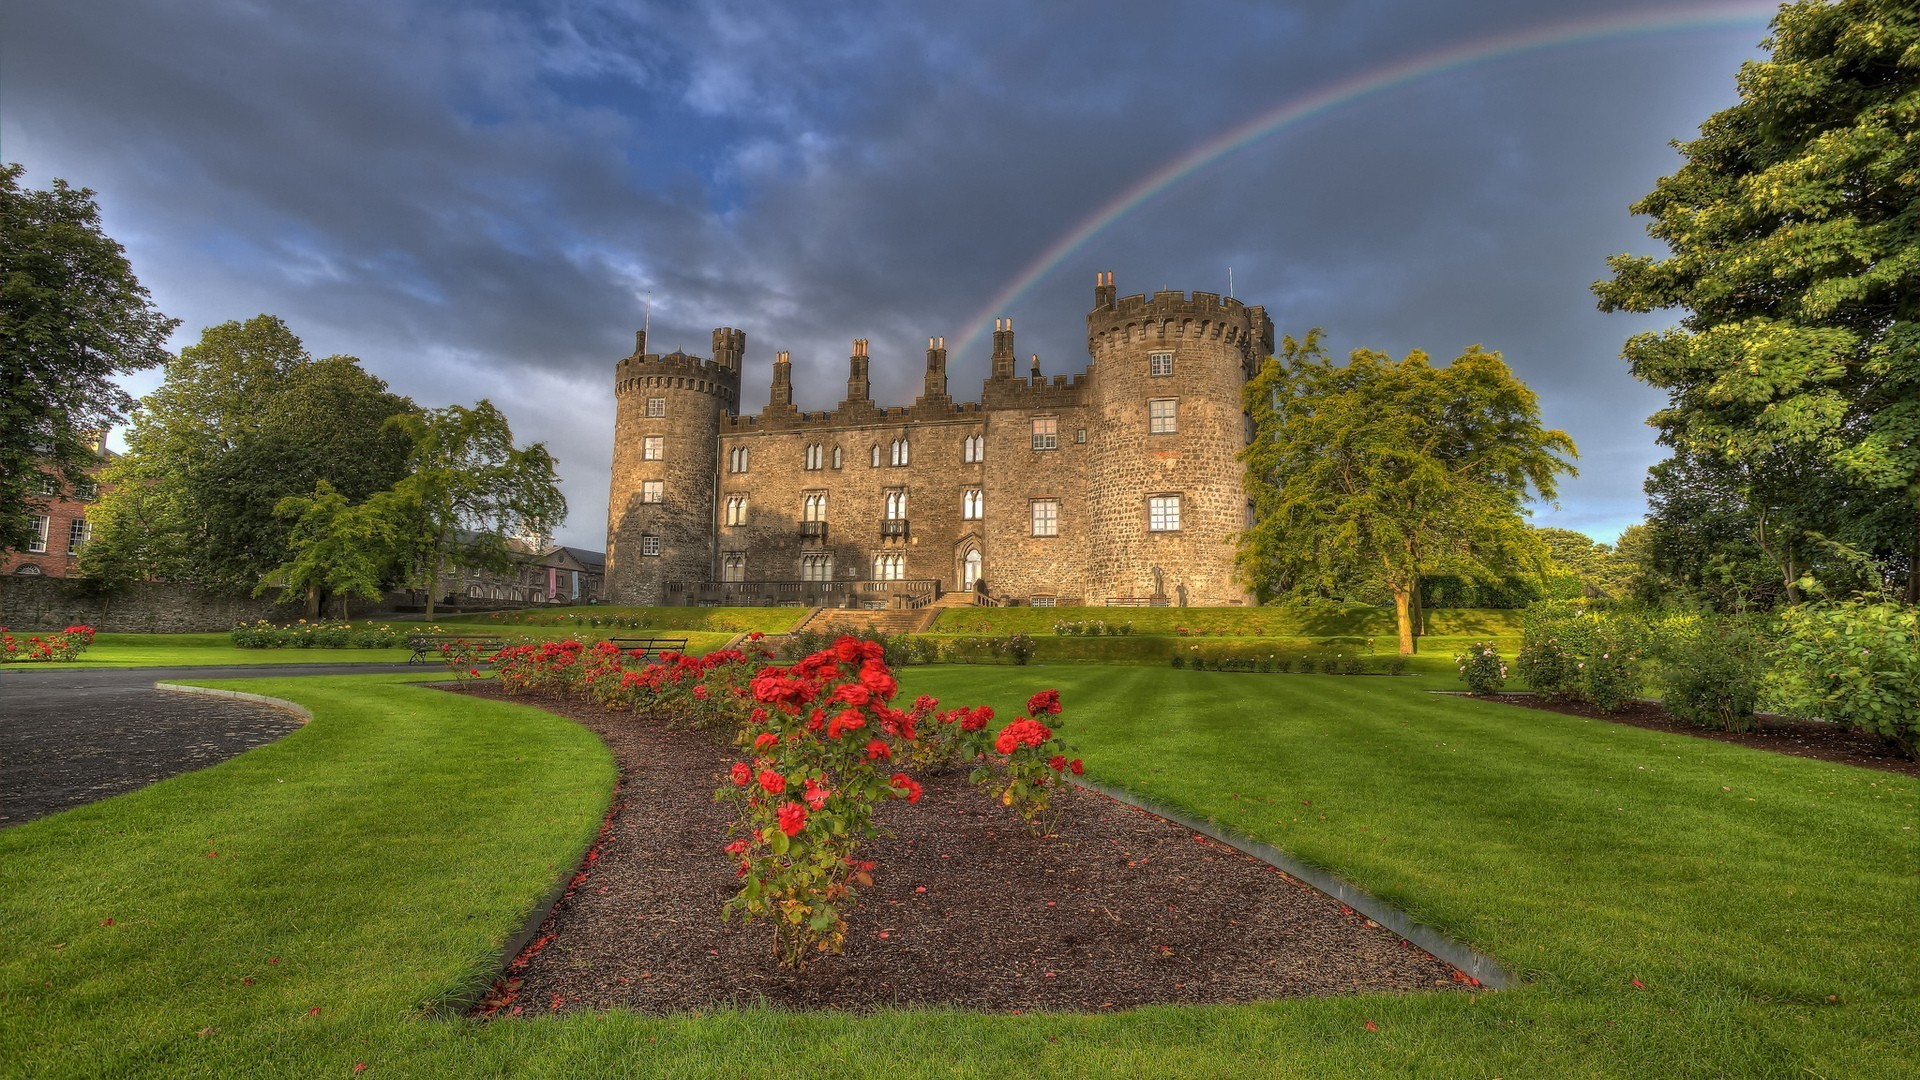 Res: 1920x1080, nature, Landscape, Architecture, Castle, Trees, Grass, Ireland, Garden,  Park, Flowers, Path, Old Building, Rainbows, Clouds Wallpapers HD / Desktop  and ...